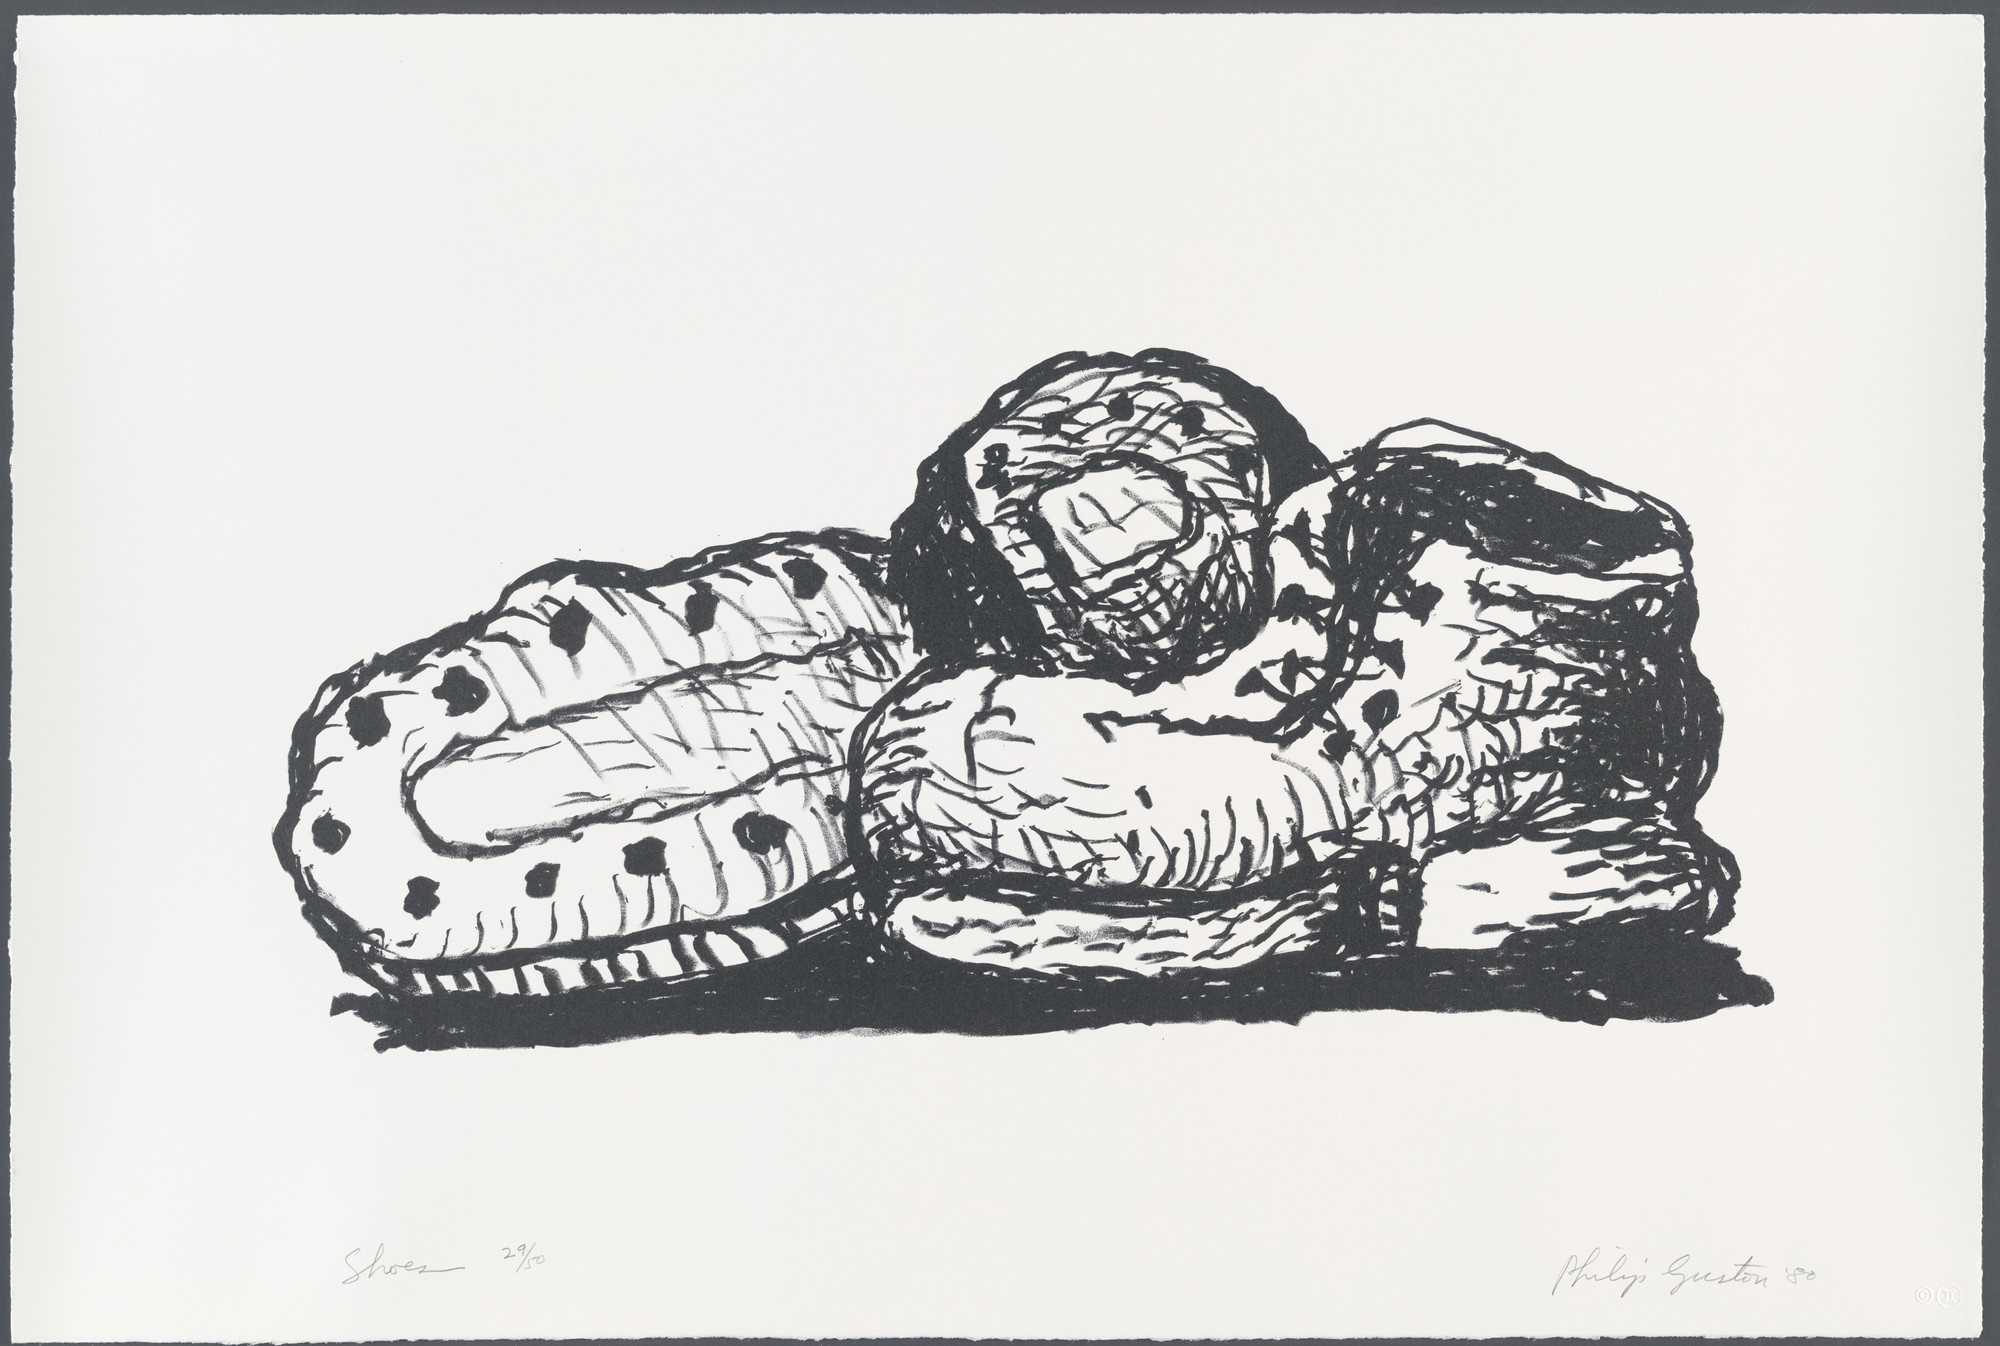 Philip Guston. Shoes. 1980, published 1981